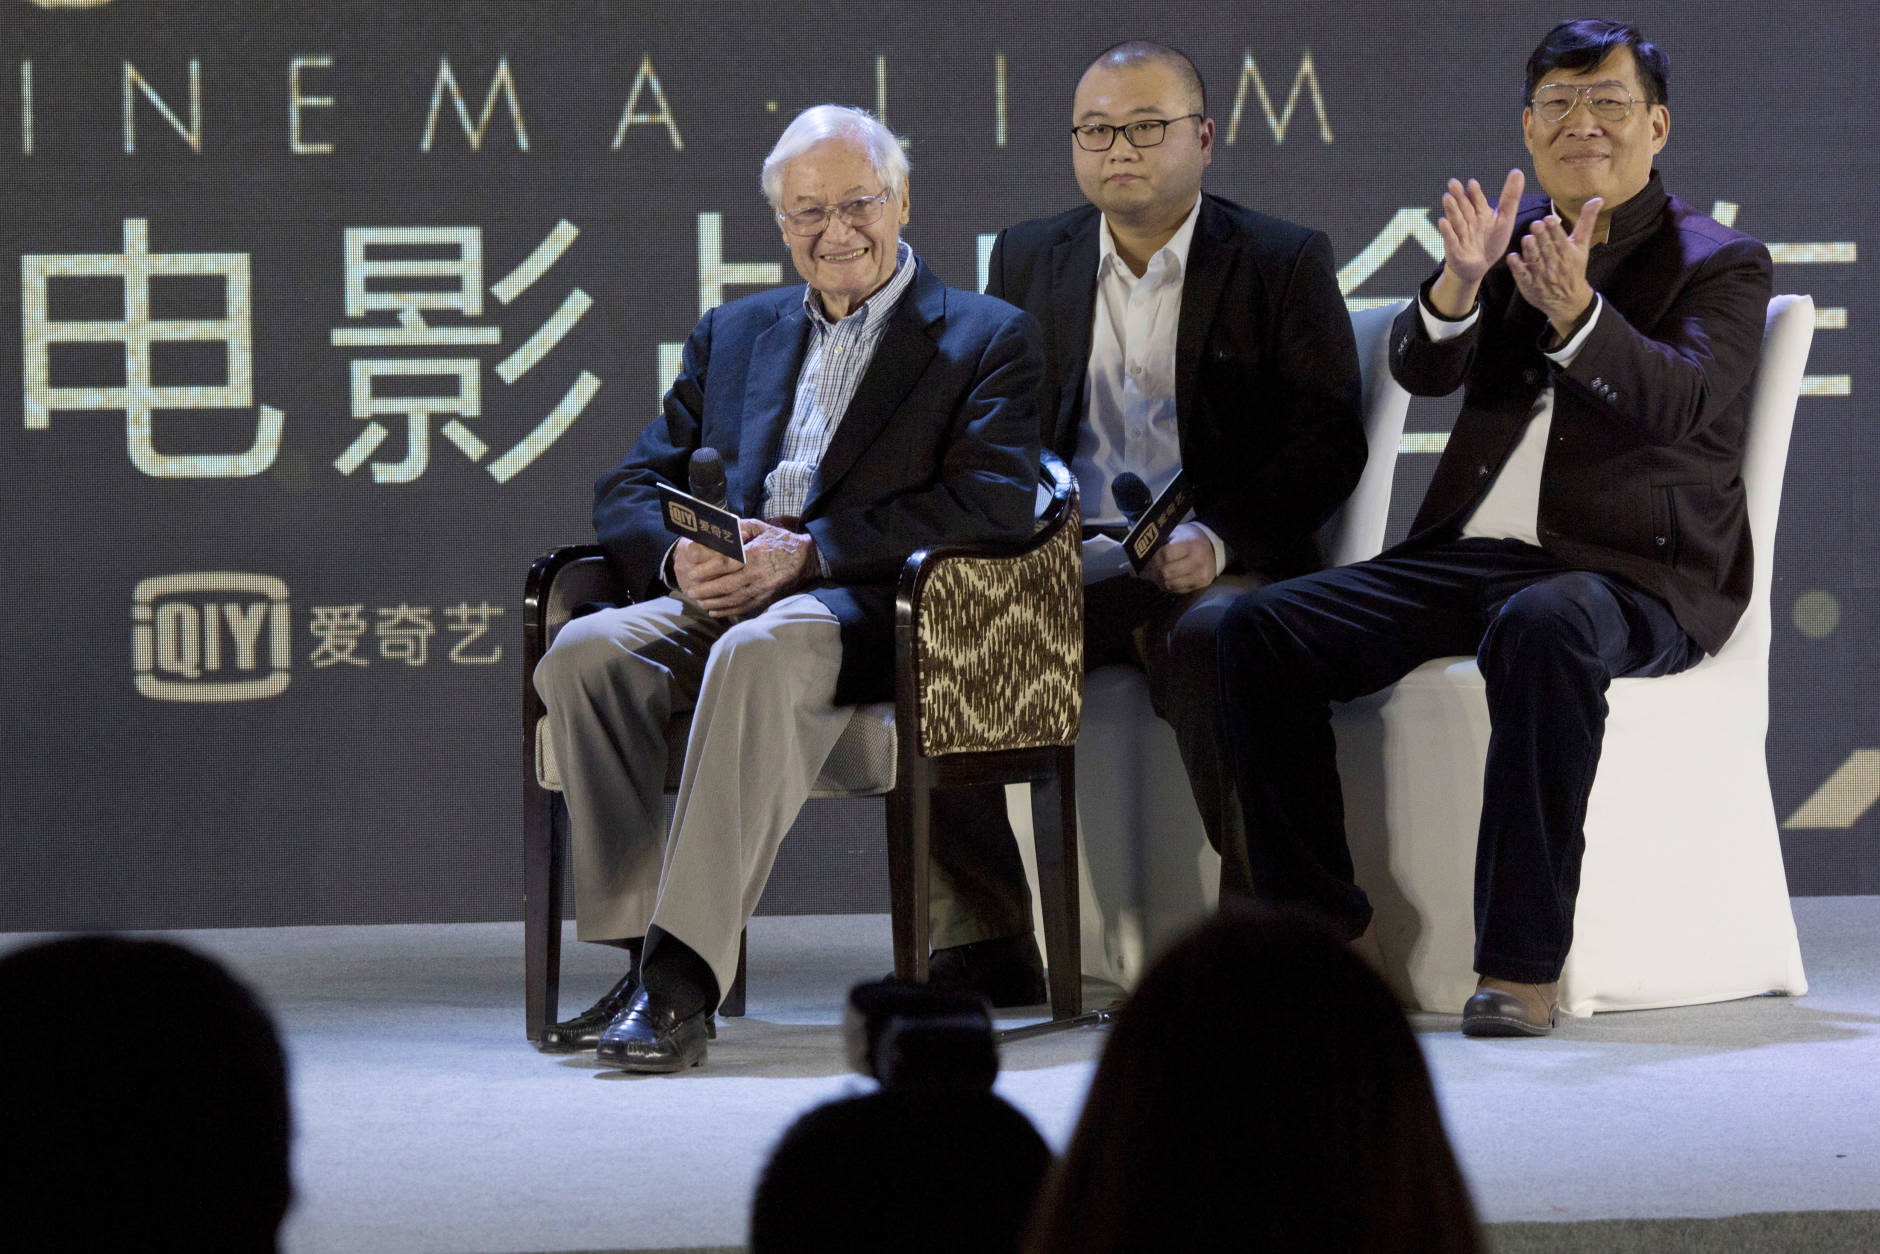 "American film producer Roger Corman, left, attends a news conference to announce co-production between Chinese online video site iQIYI and Sony Pictures in Beijing, China, Thursday, Dec. 1, 2016. The 90-year-old American producer of films including ""The St. Valentine's Day Massacre"" and ""Attack of the 50 Foot Cheerleader"" will lead a team of young Chinese filmmakers and act as producer on a sci-fi film made for viewing on the internet or mobile phone called ""Invasion."" (AP Photo/Ng Han Guan)"